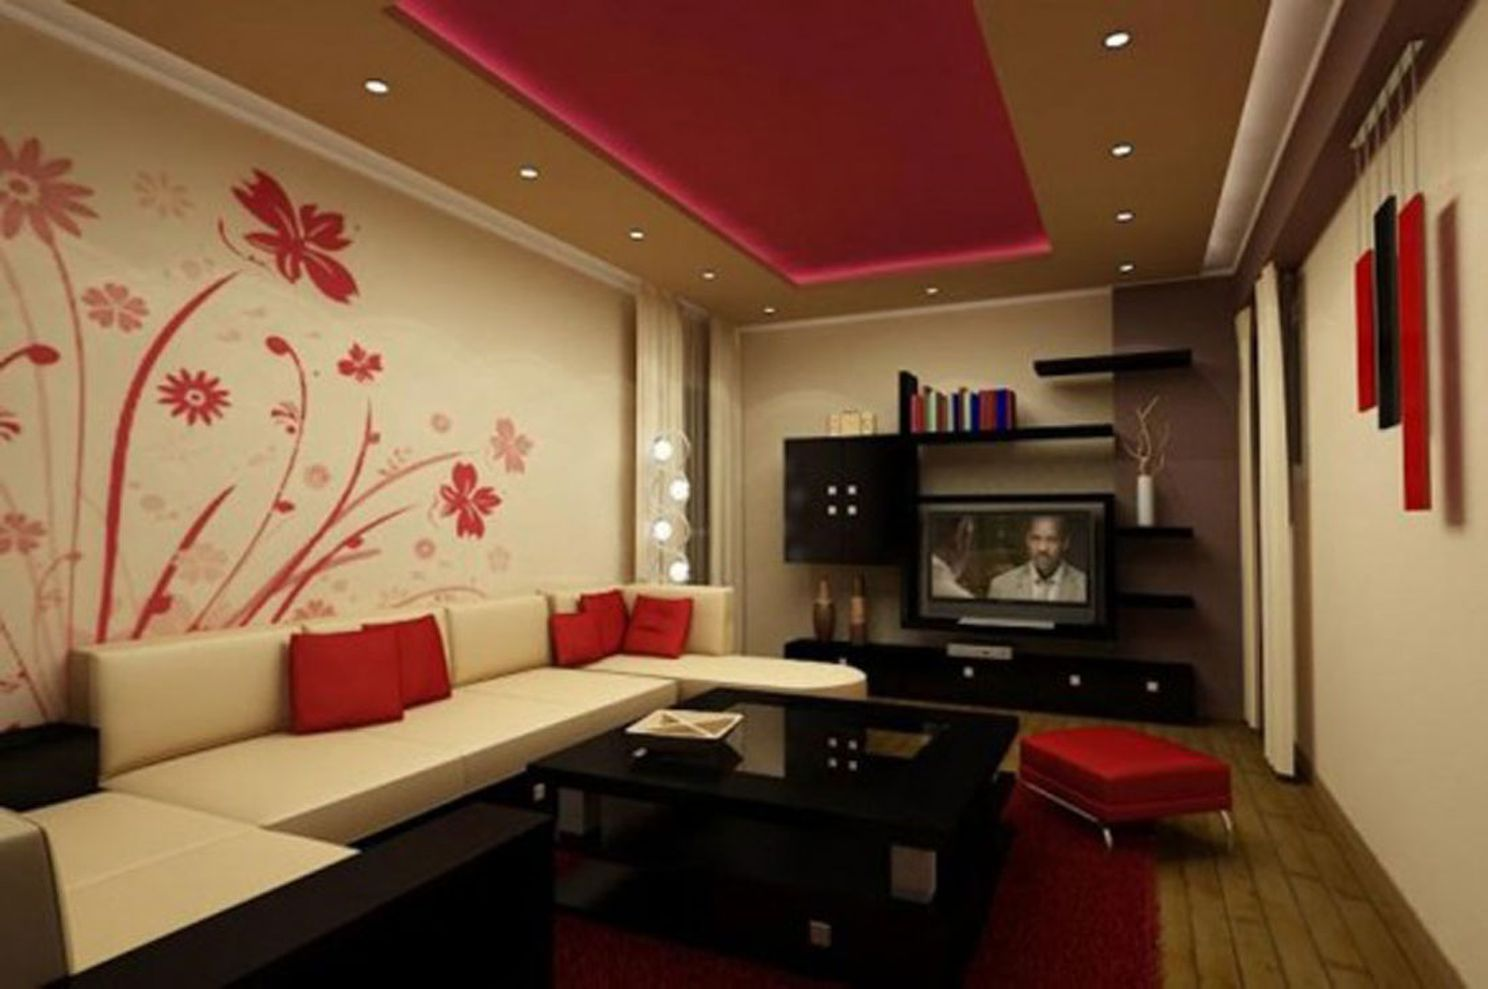 76 Stunning Red Brown And Black Living Room Design Ideas